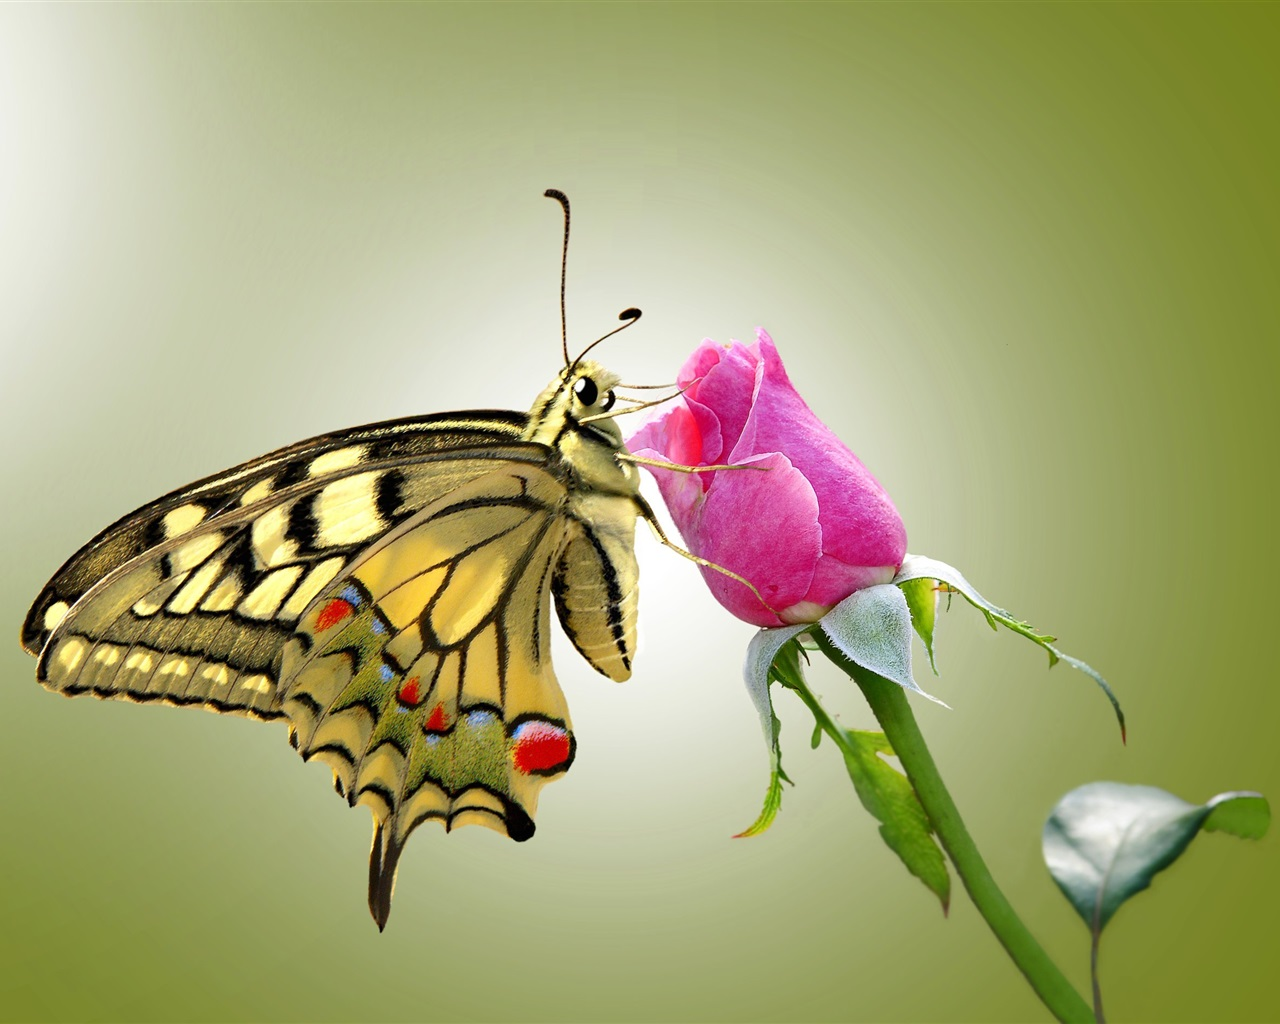 1280x1024 HD Wallpaper Butterfly and pink rose